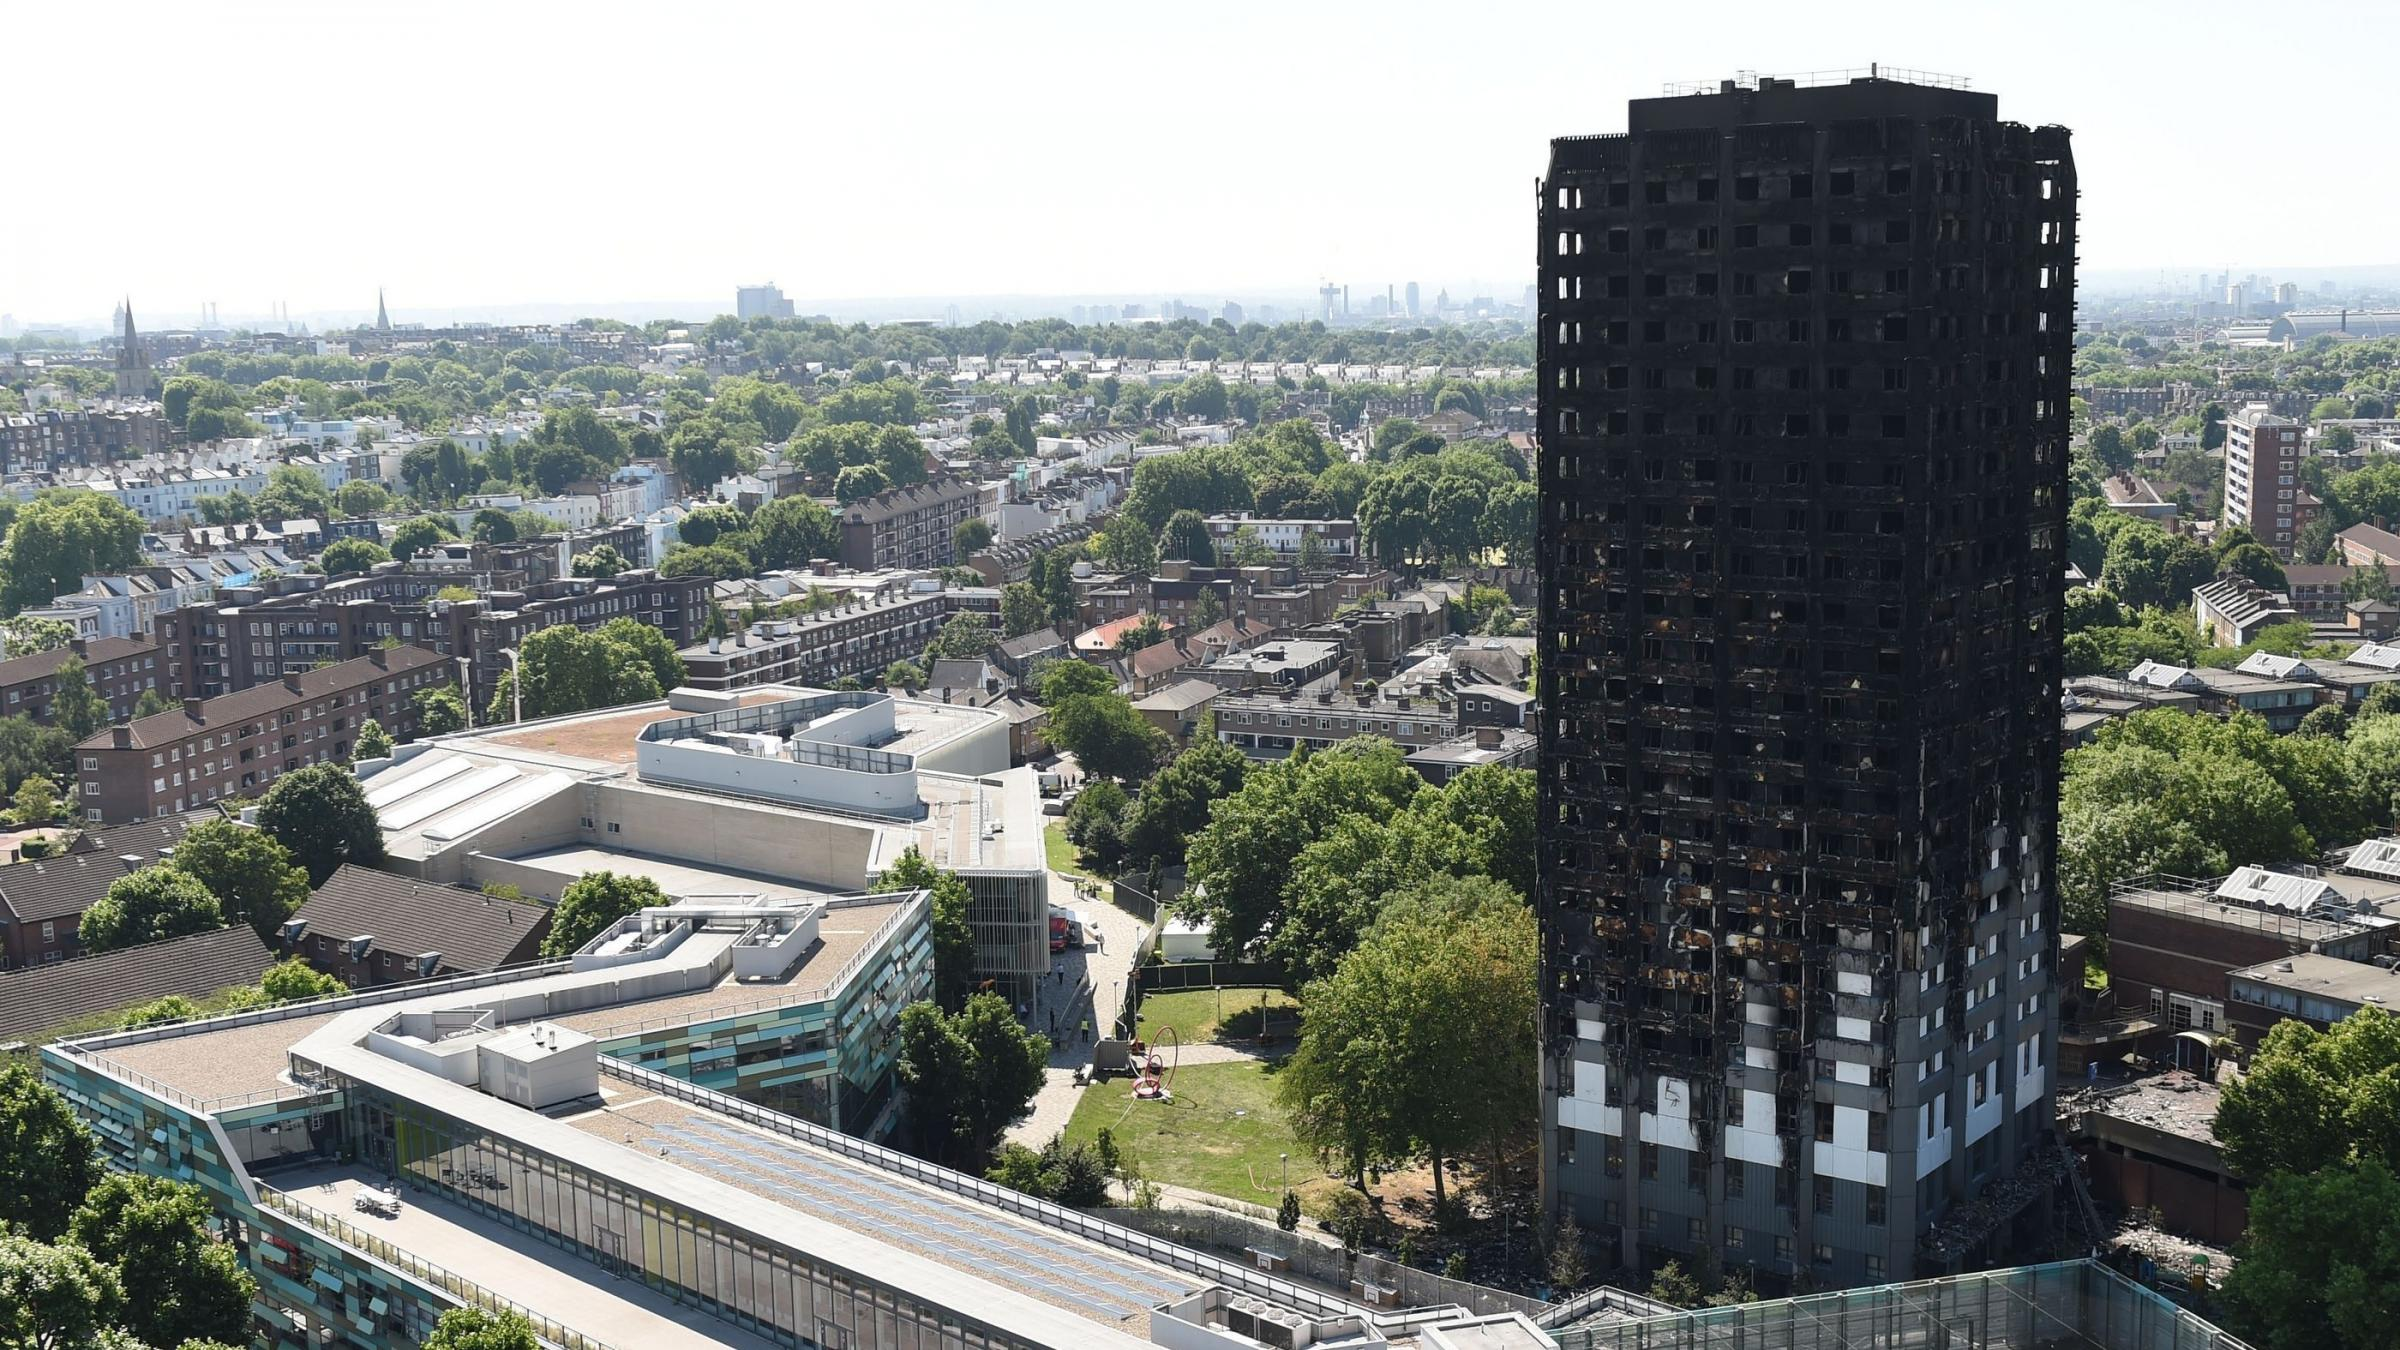 London flats' fire death toll rises to 17, many still missing